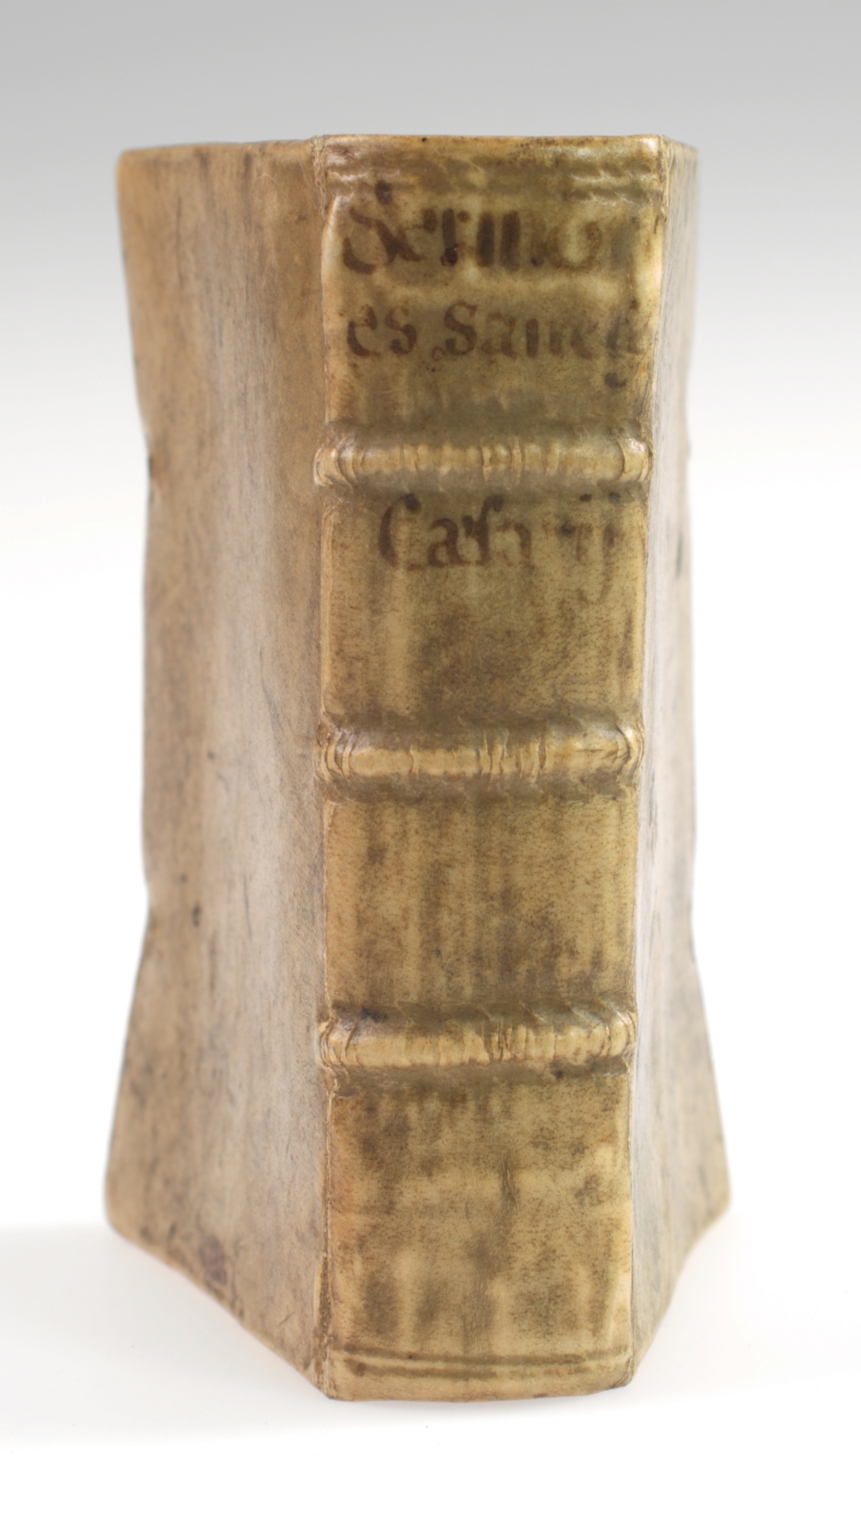 Miscellany of sermons by Caesarius of Arles, Eusebius Gallicanus, Eucherius of Lyon, Faustus of Riez, Augustine, Hugh of St. Victor, Pope Benedict XII, and Pope Urban V, spine